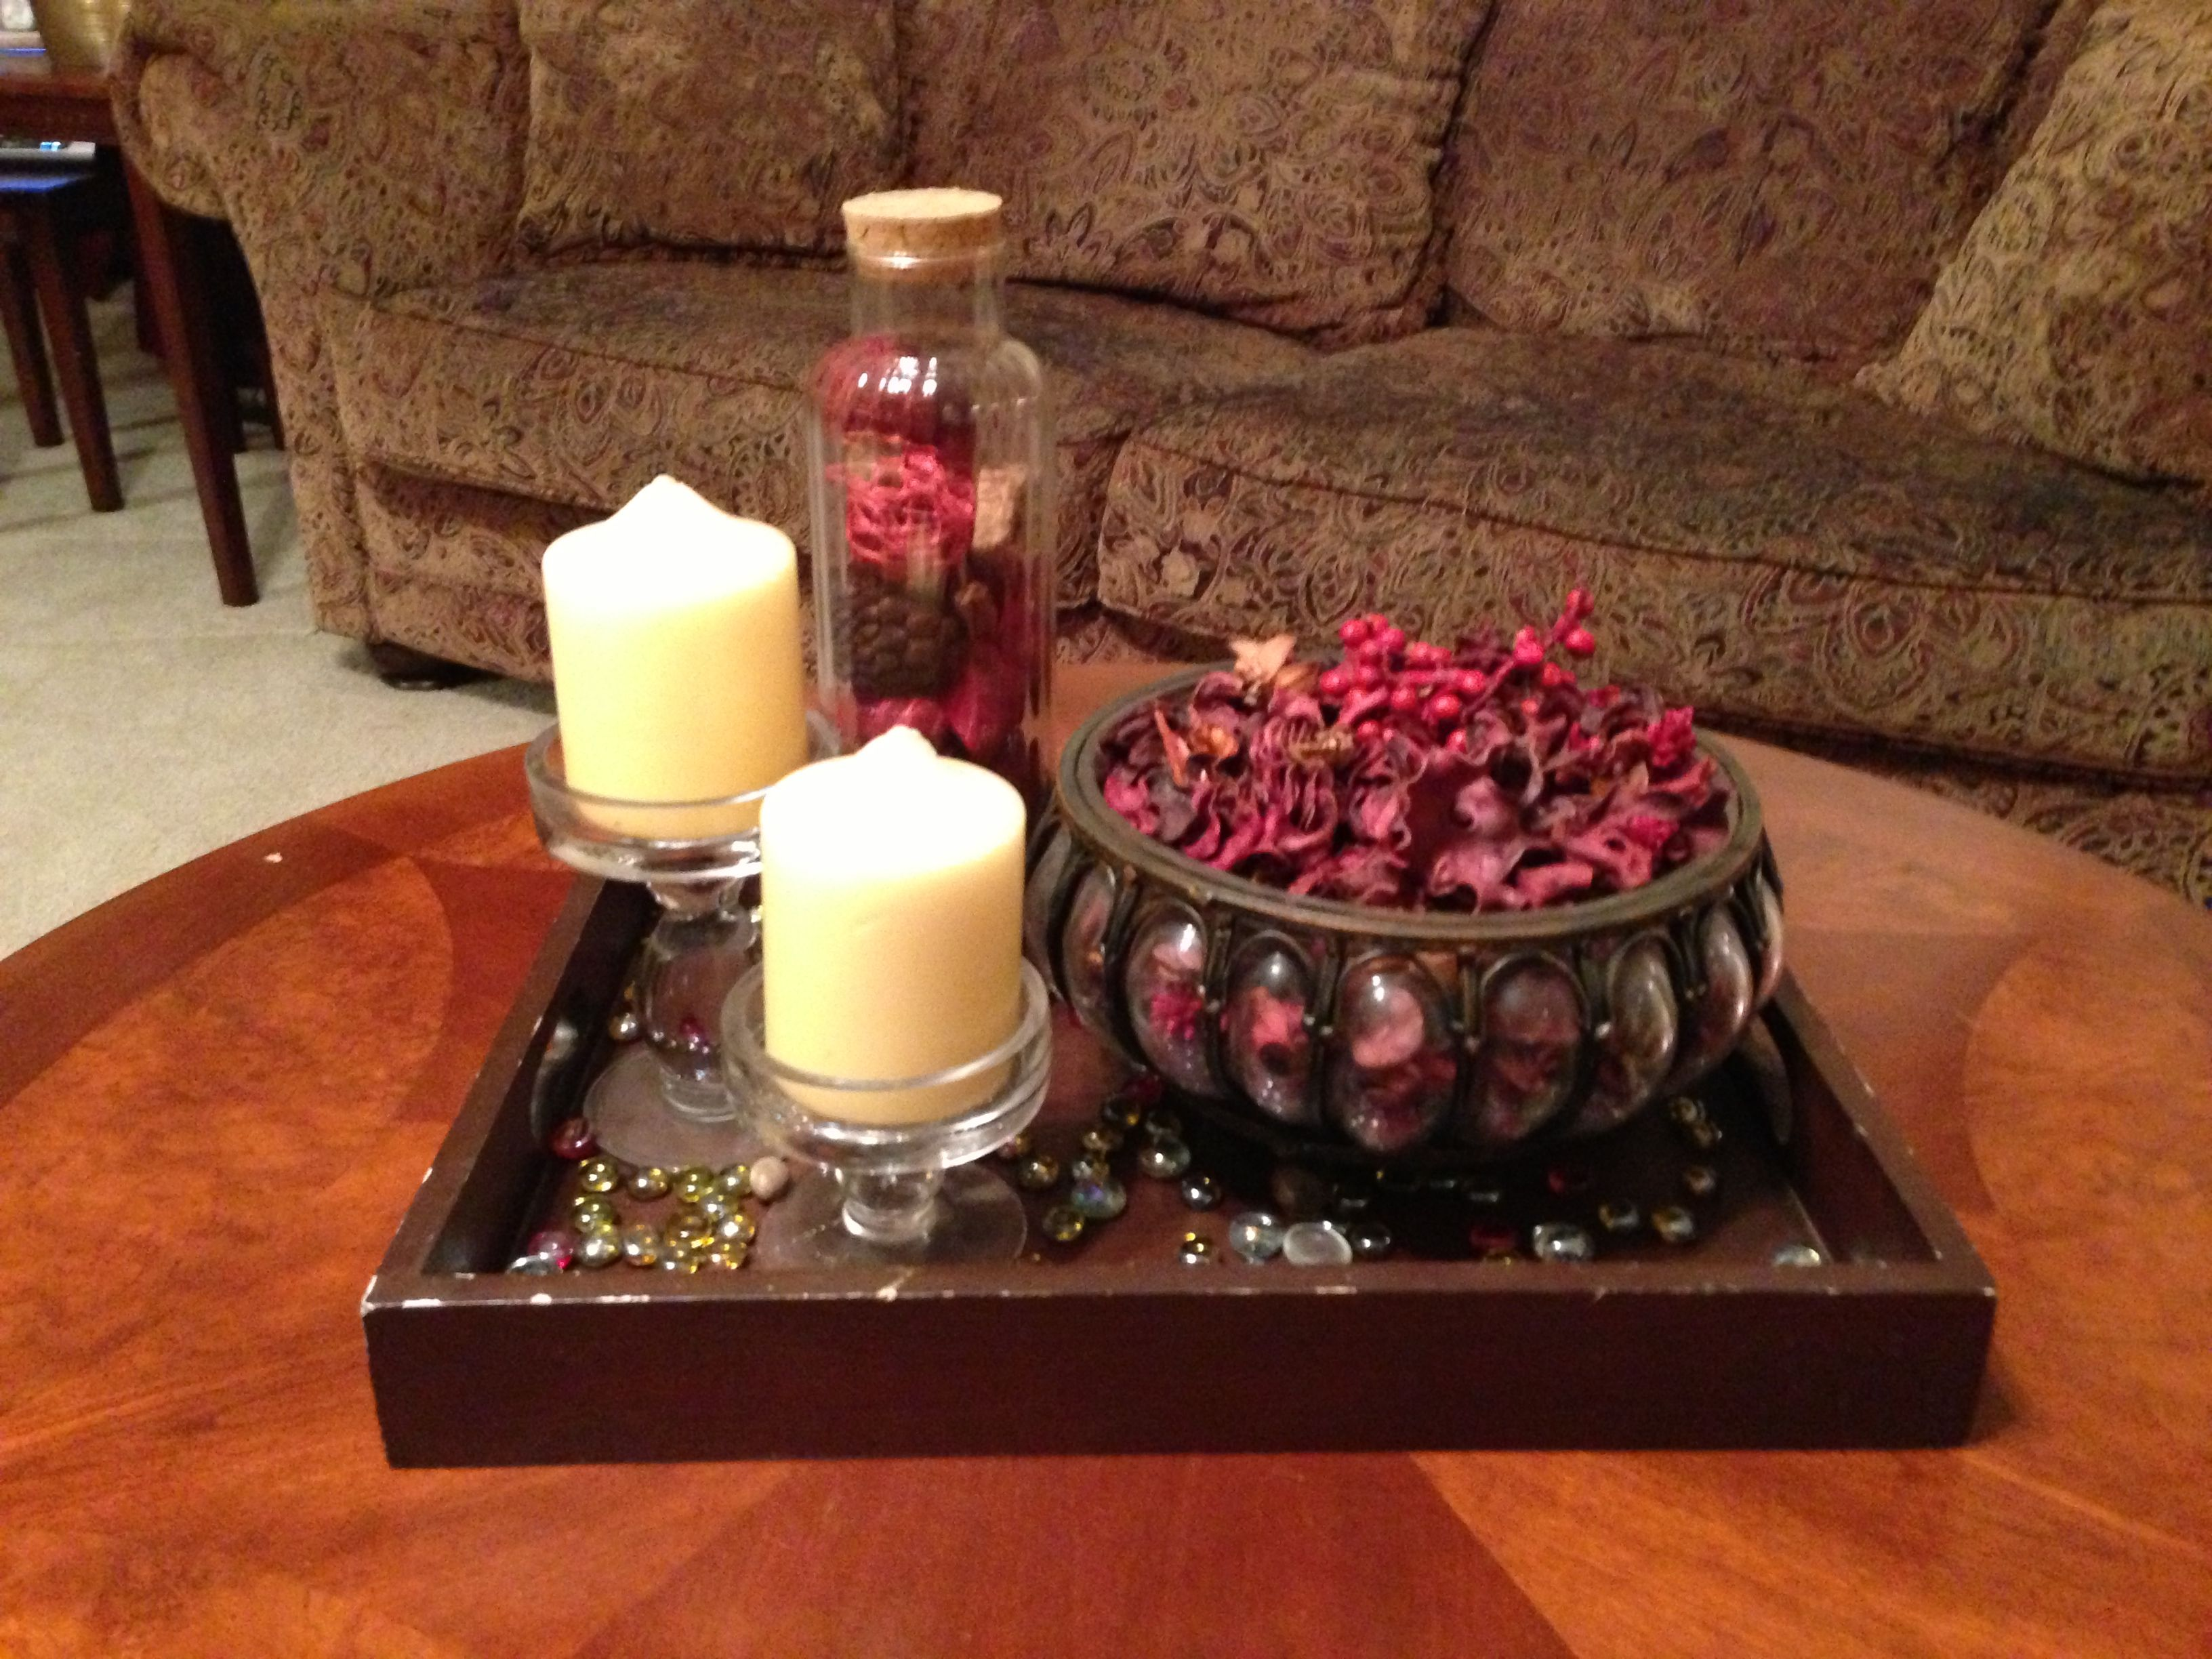 Coffee table decor...potpourri and candle/holder..boom